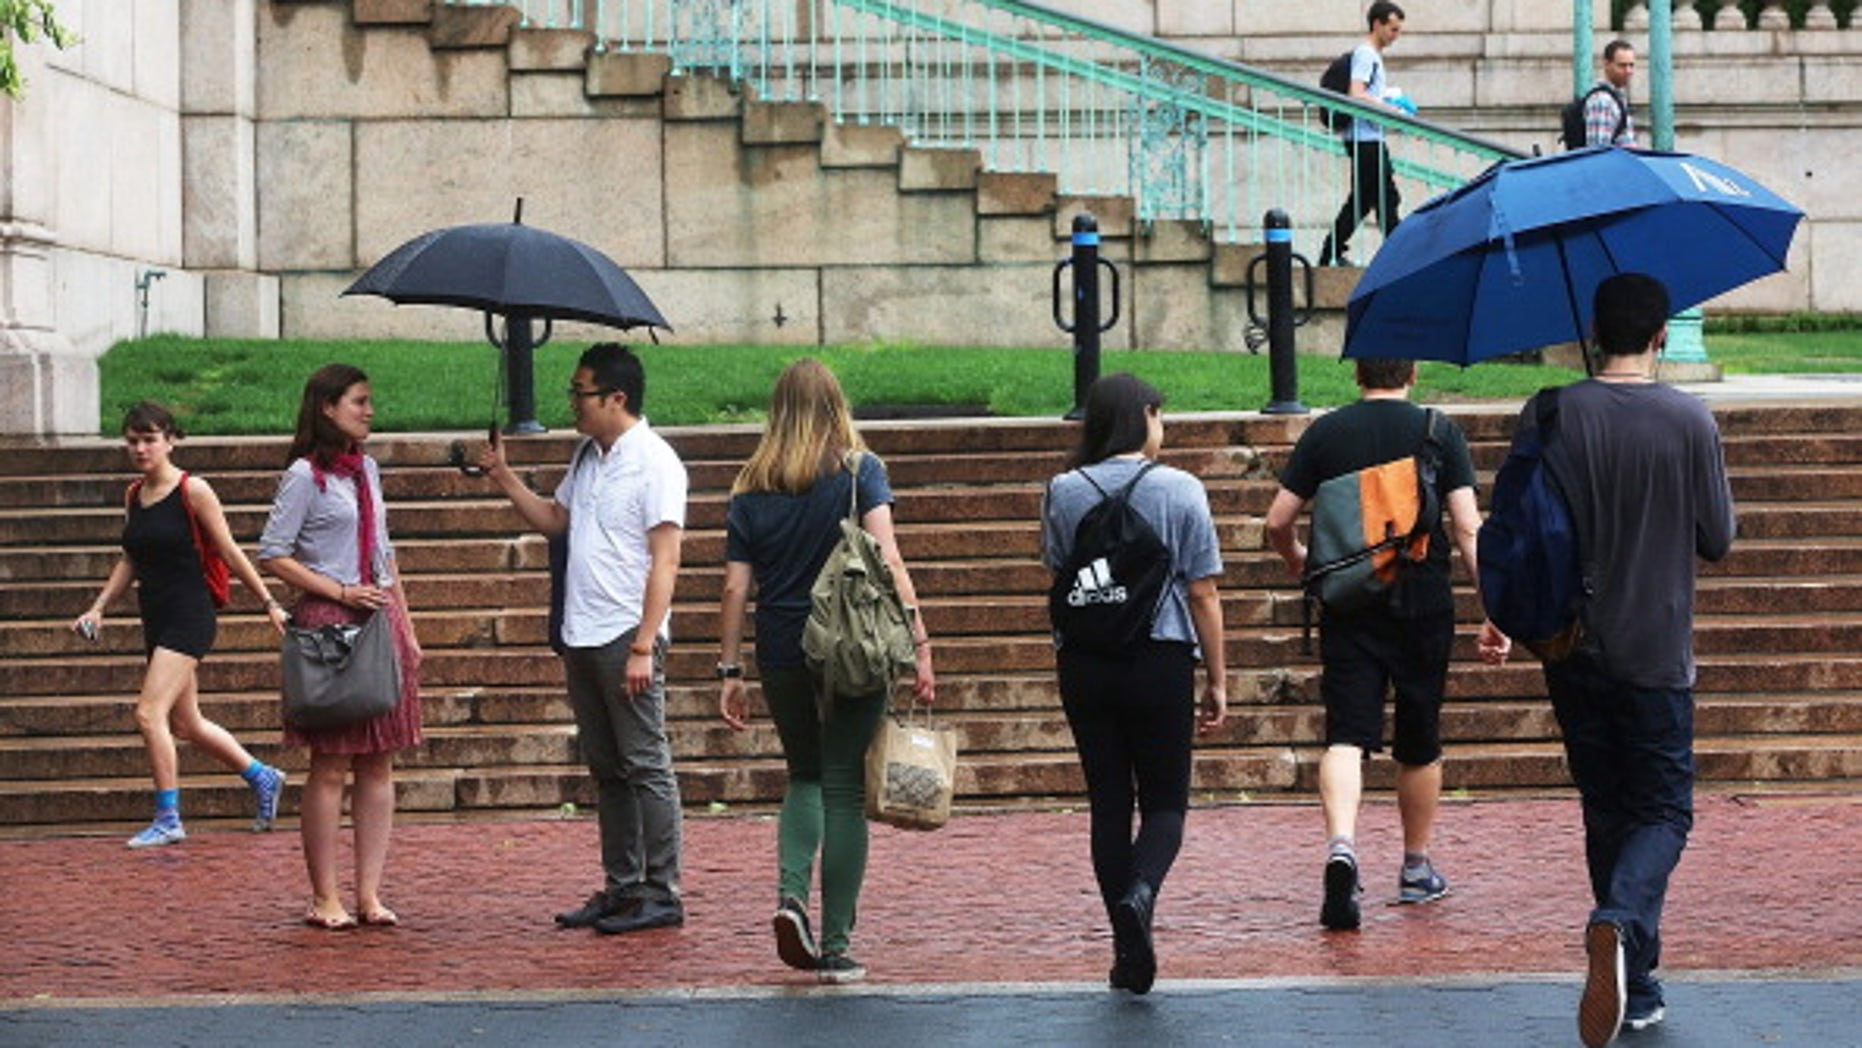 NEW YORK, NY - JULY 01:  People walk on the Columbia University campus on July 1, 2013 in New York City. An interest rate hike kicks in today for student loans, an increase for 7 million students. Congress left town at the end of last week failing to prevent rates on new Stafford student loans increasing from 3.4 percent to 6.8 percent.  (Photo by Mario Tama/Getty Images)